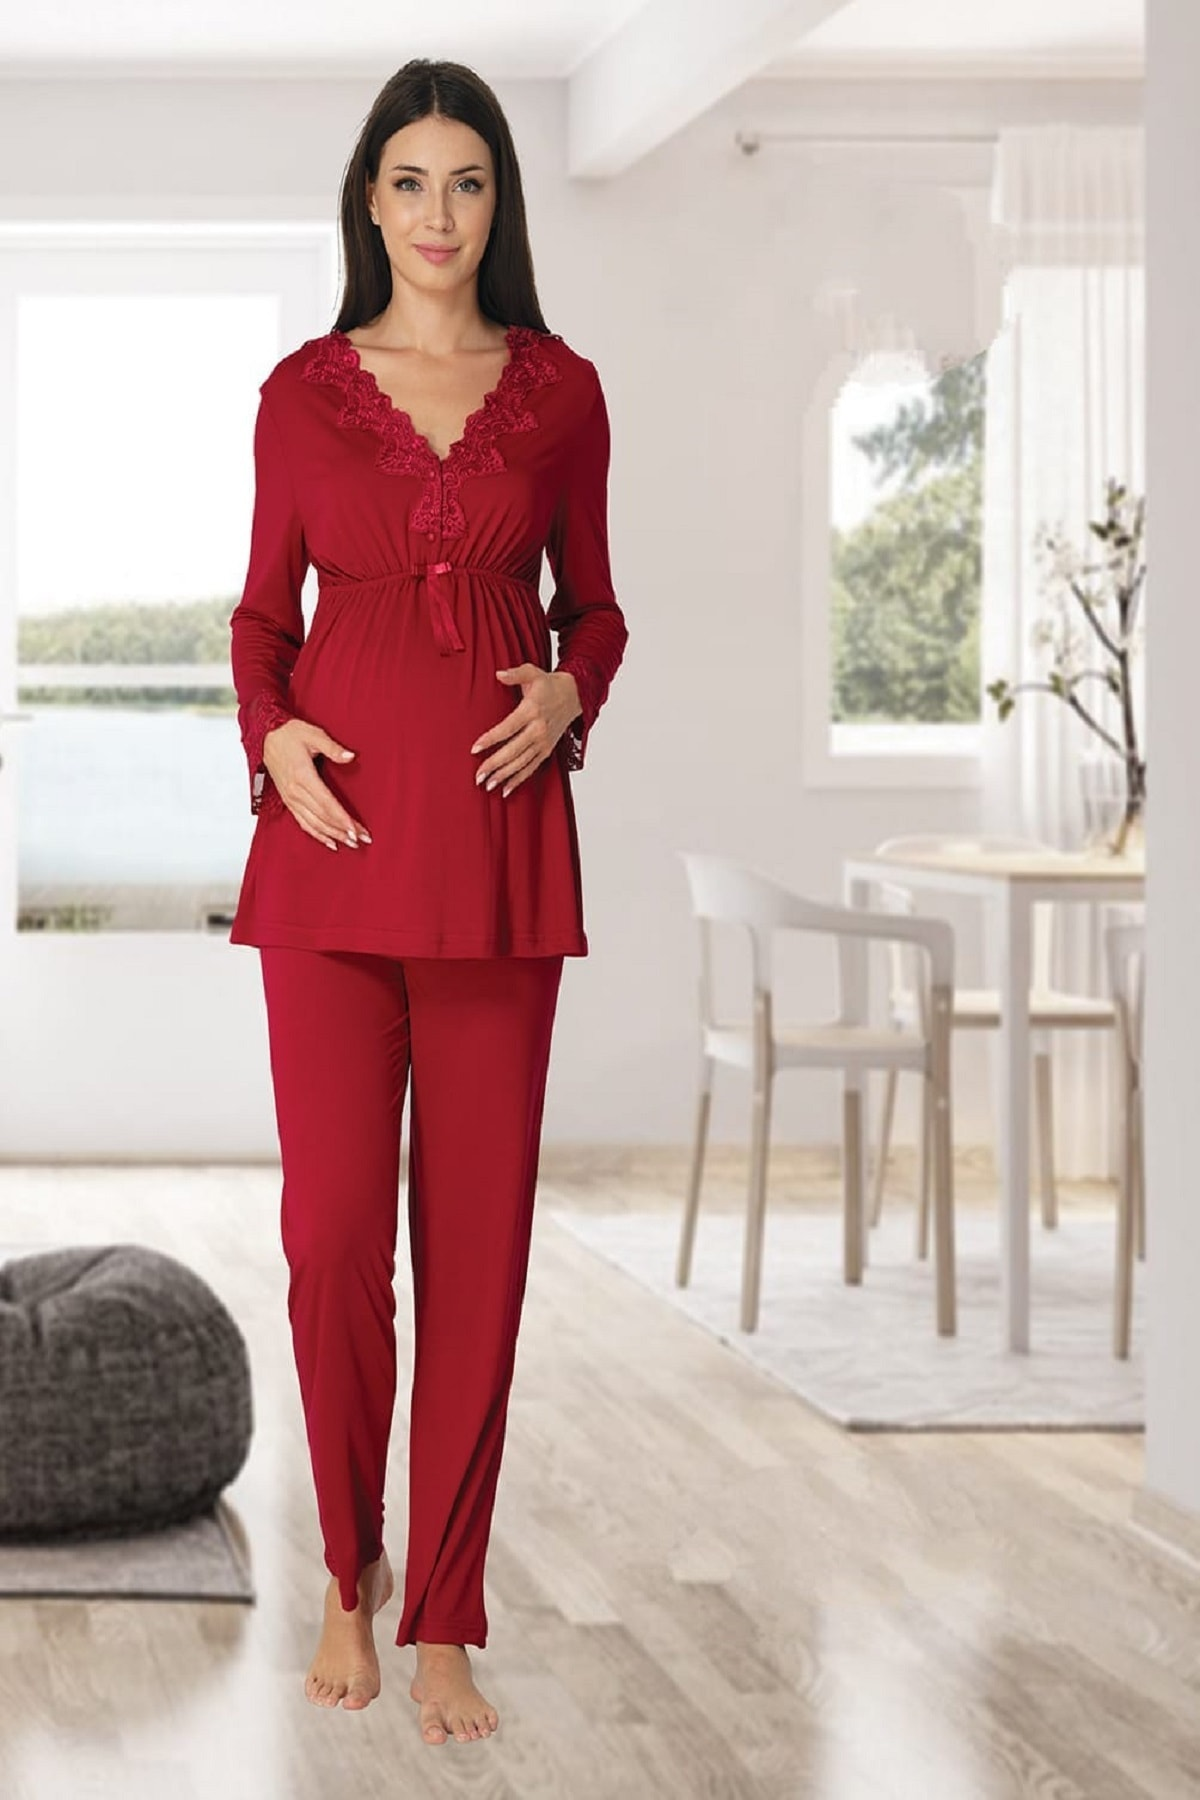 Effort Pajamas Women Long Sleeve Pajamas Set Nightgown Dressing Gown Maternity Pregnant 4 Pieces White Red Navy Blue enlarge